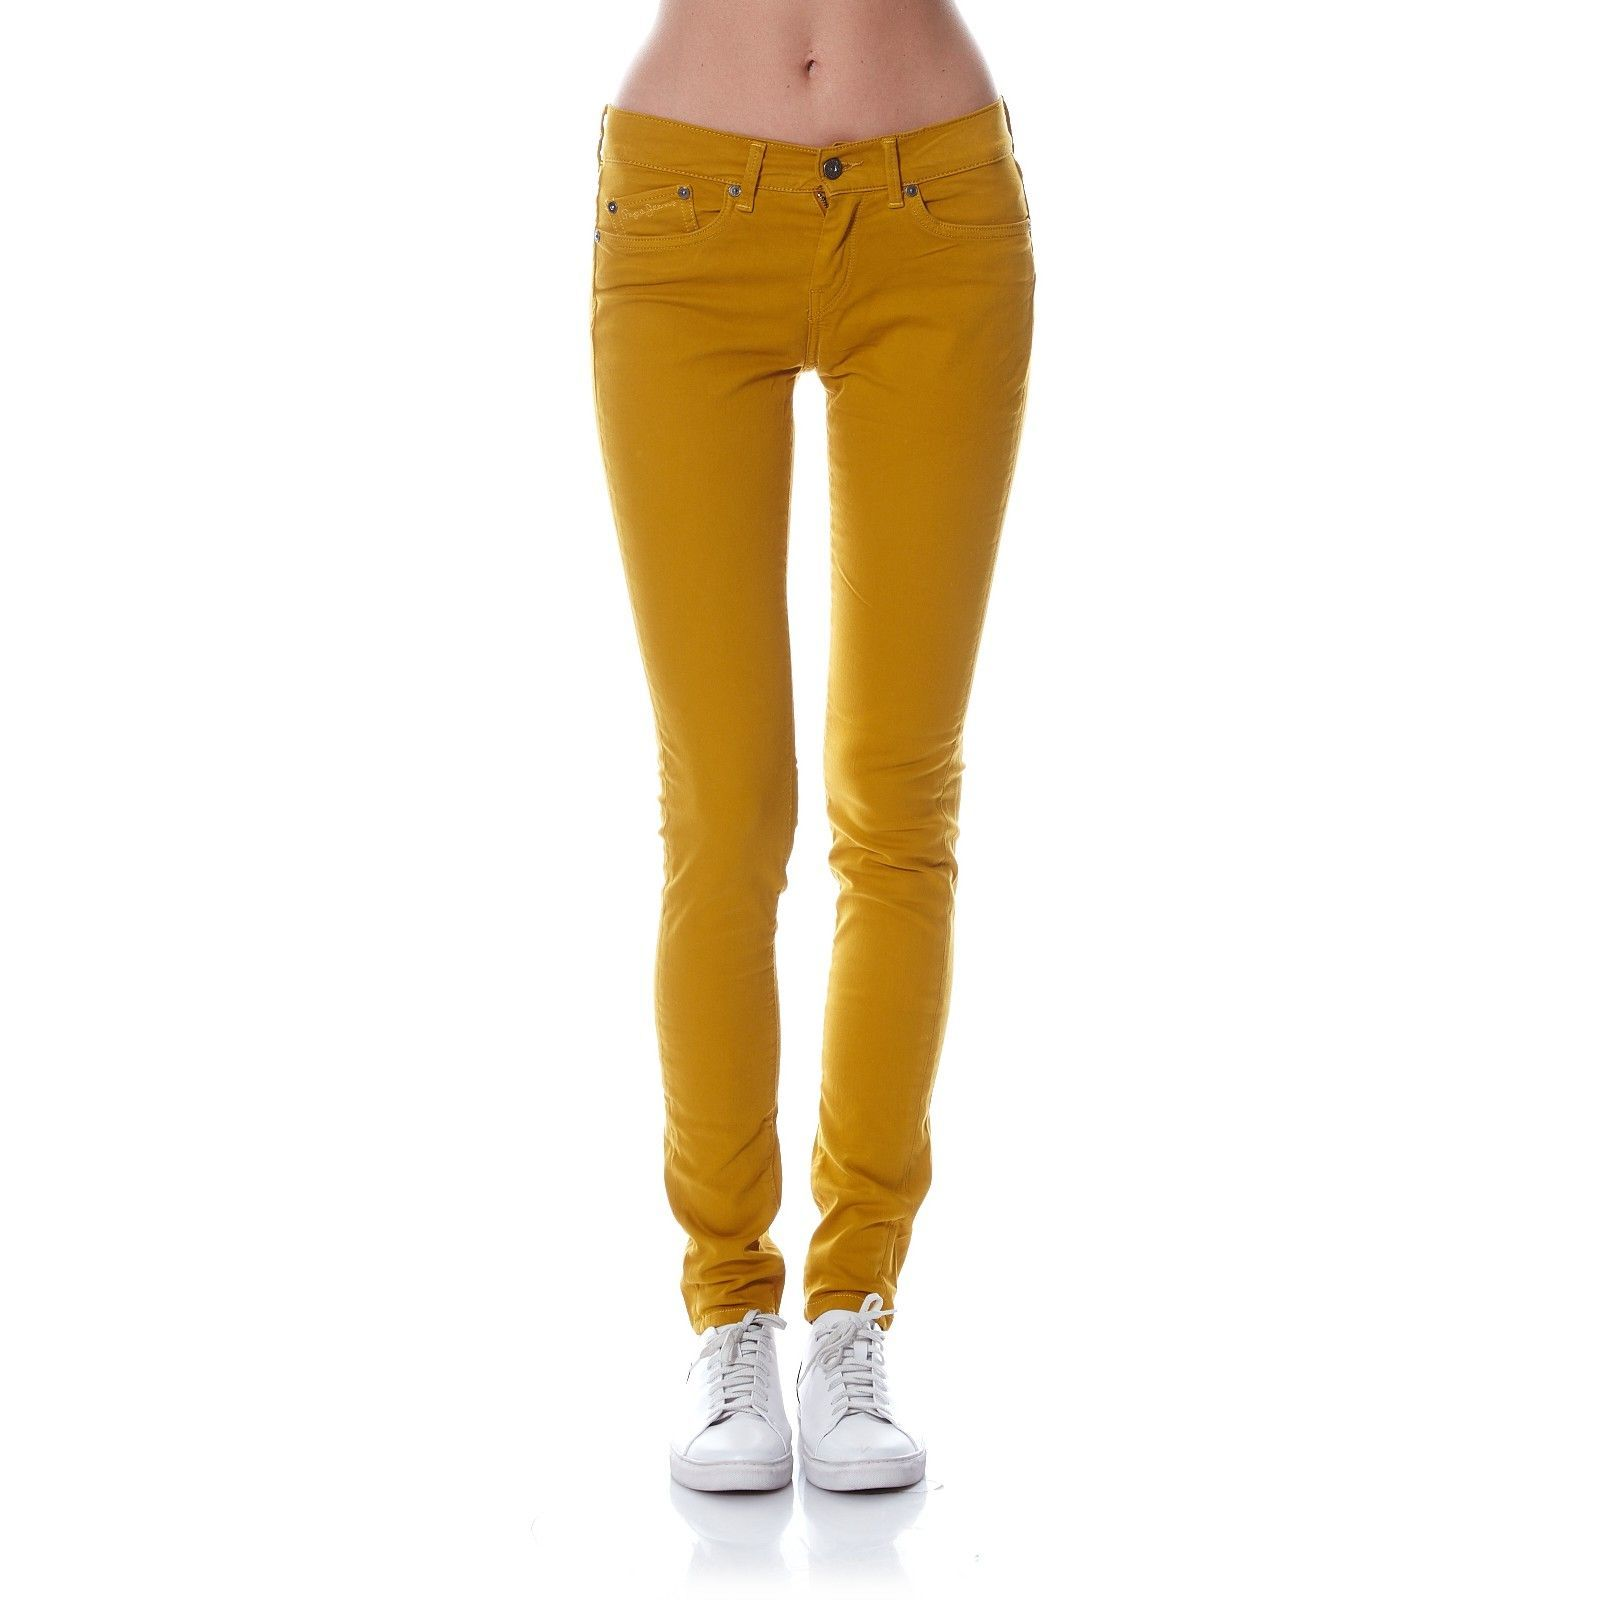 Jeans Jean Slim Brandalley Skinny London Pepe Pixie Moutarde gCn6wxRq7x 067b7c854a4